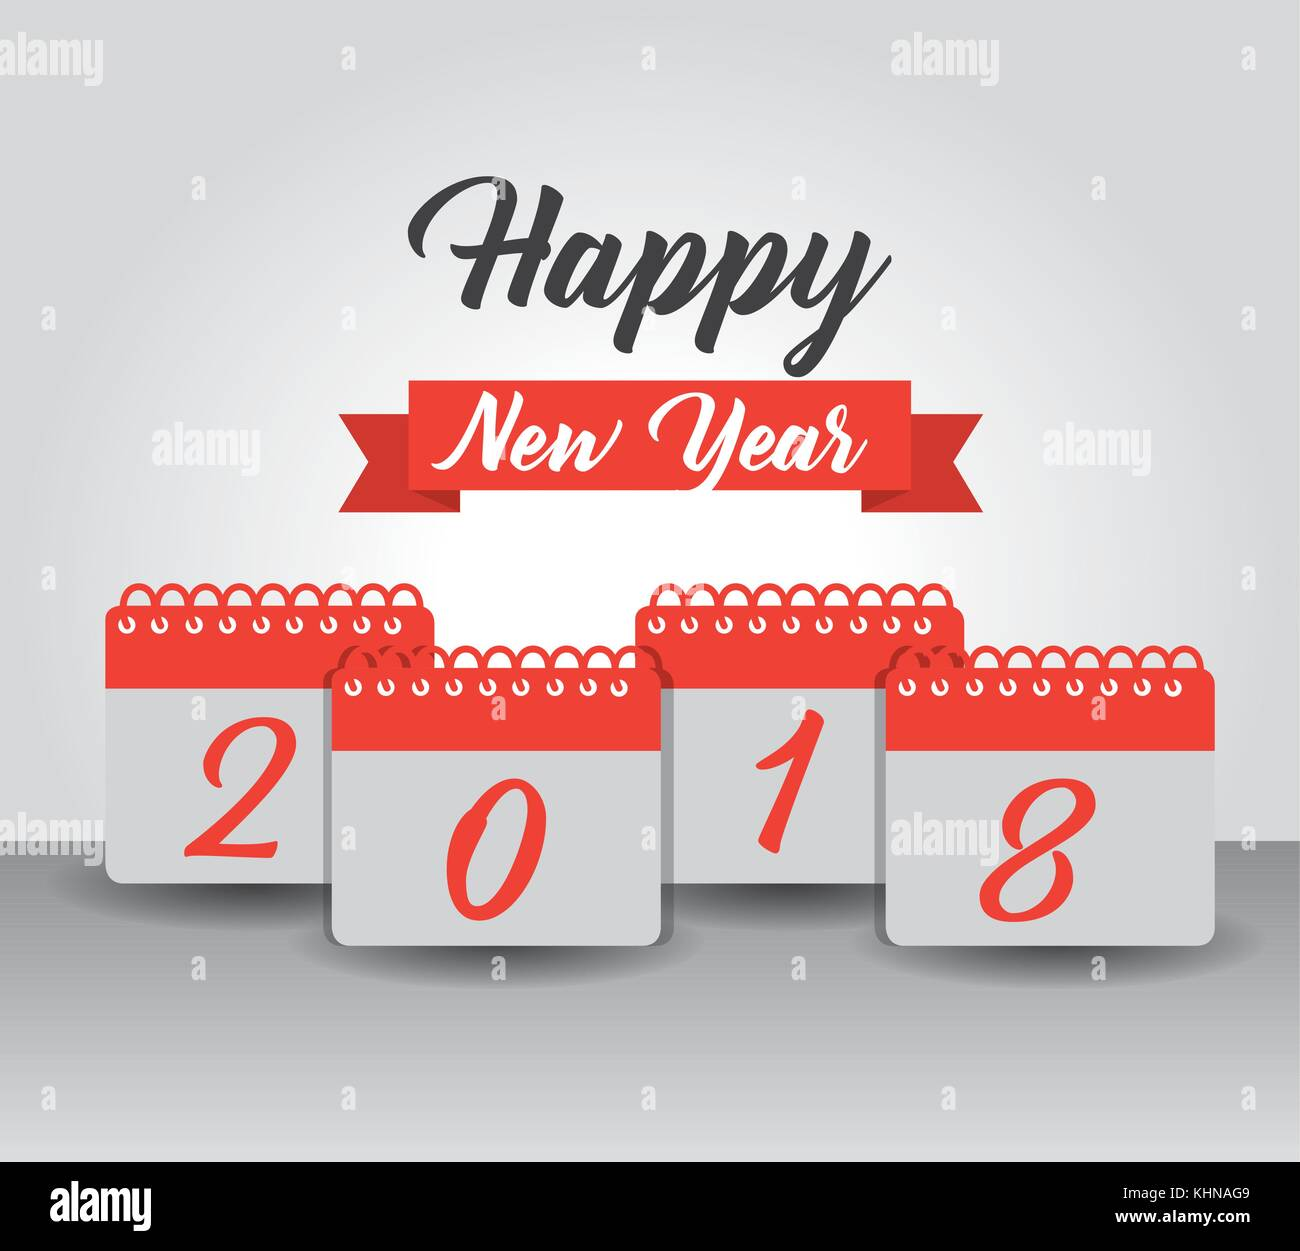 happy new year 2018 calendar numbers banner design celebration stock vector art illustration vector image 165811753 alamy